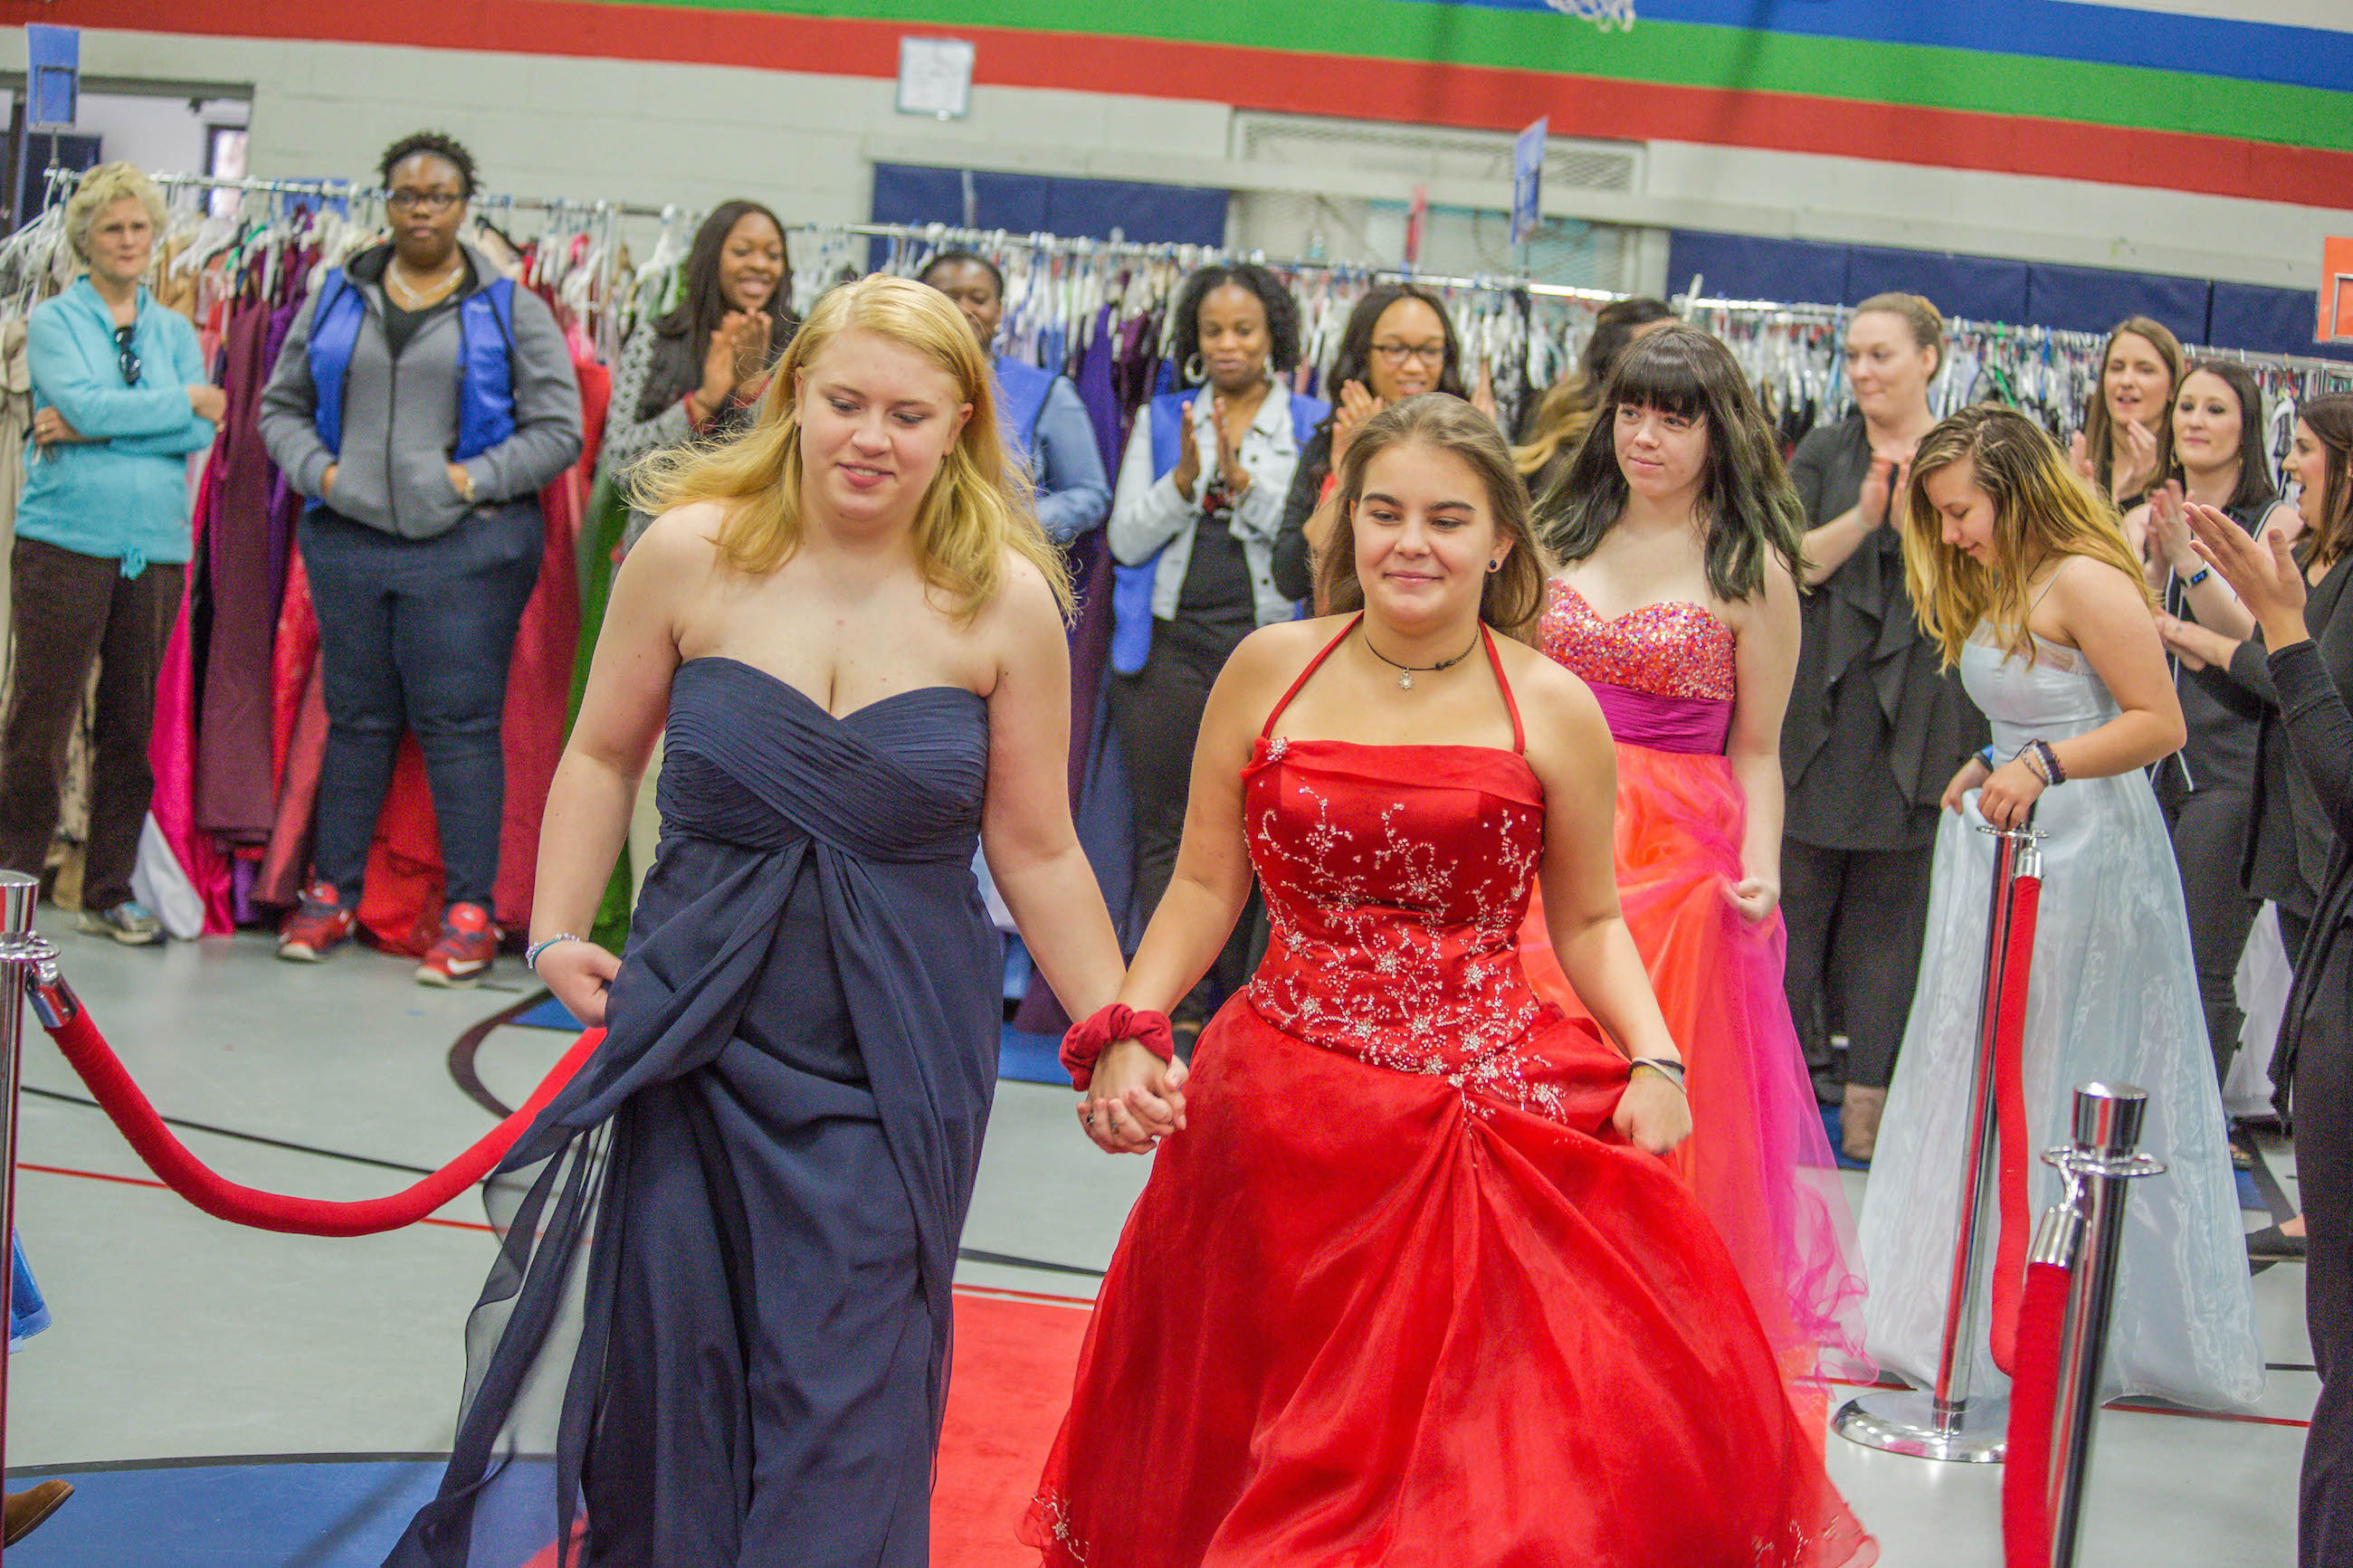 e221afb9695c Operation Prom – Junior League of Tallahassee